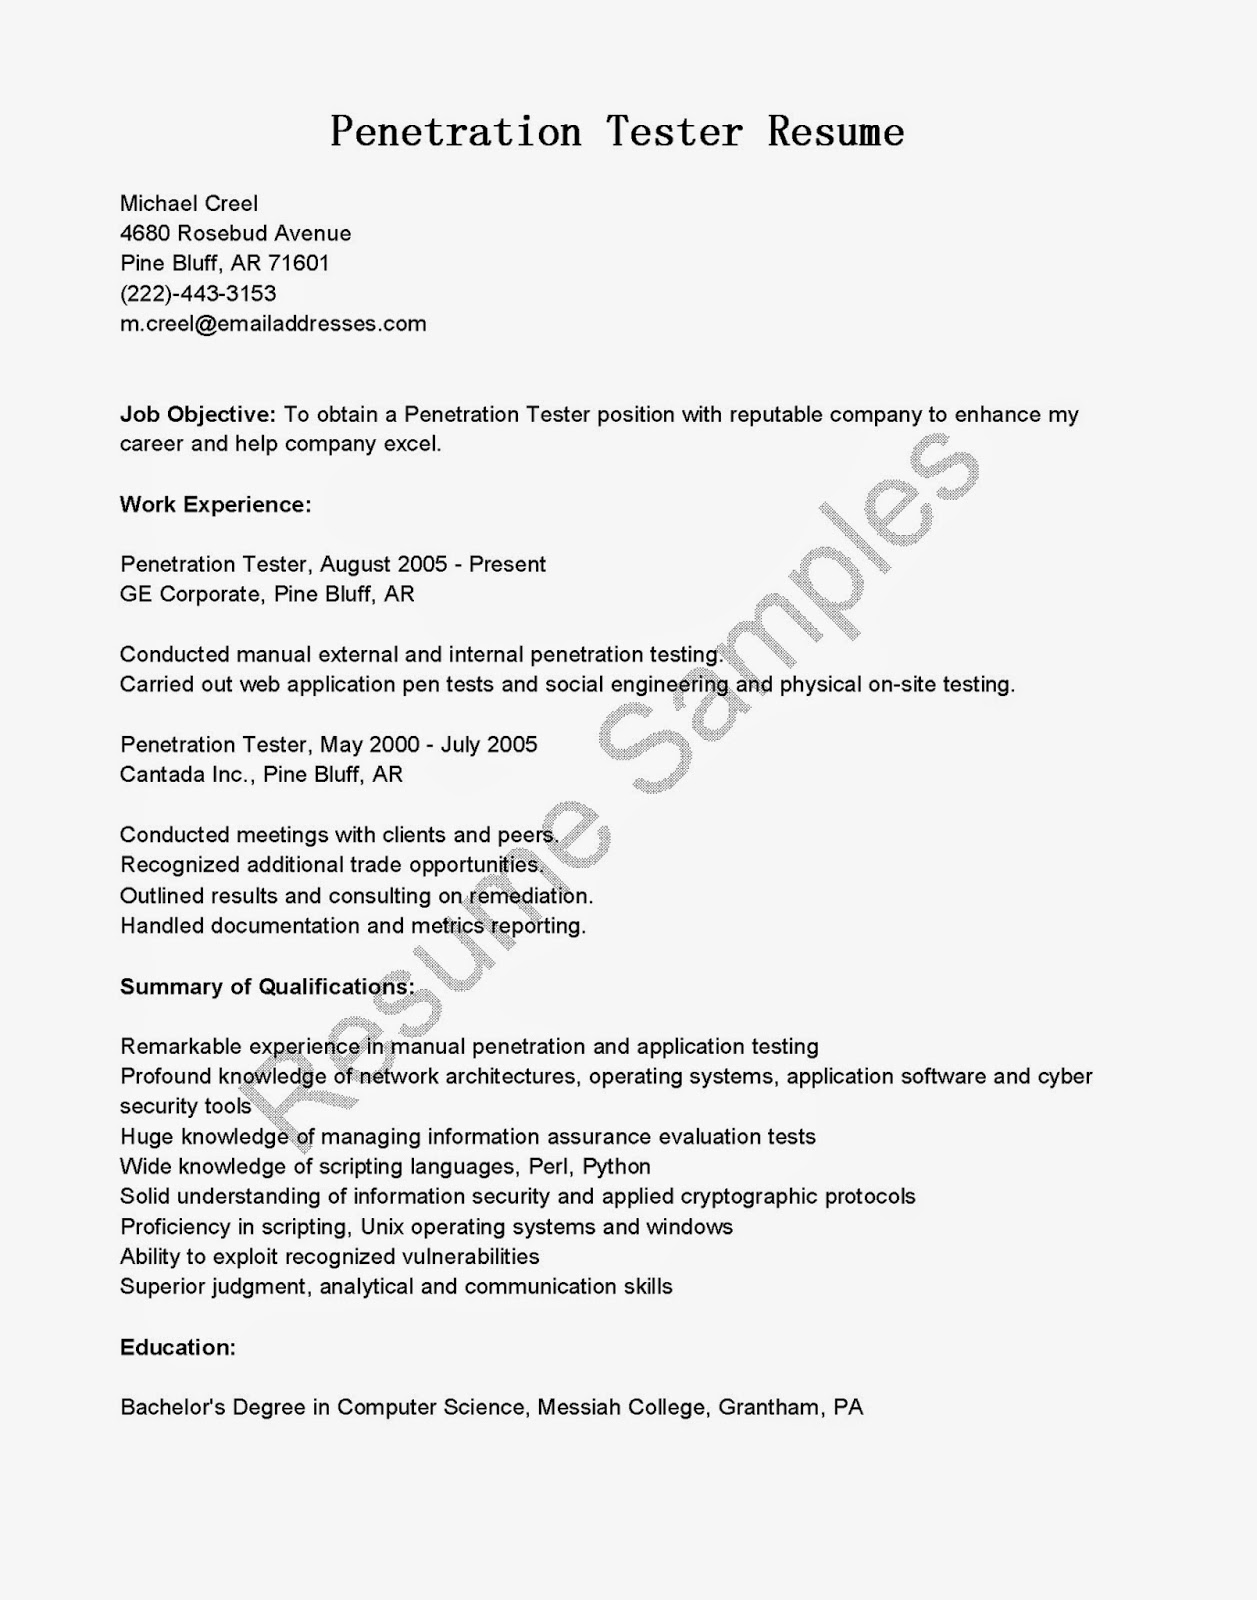 resume samples penetration tester resume sample